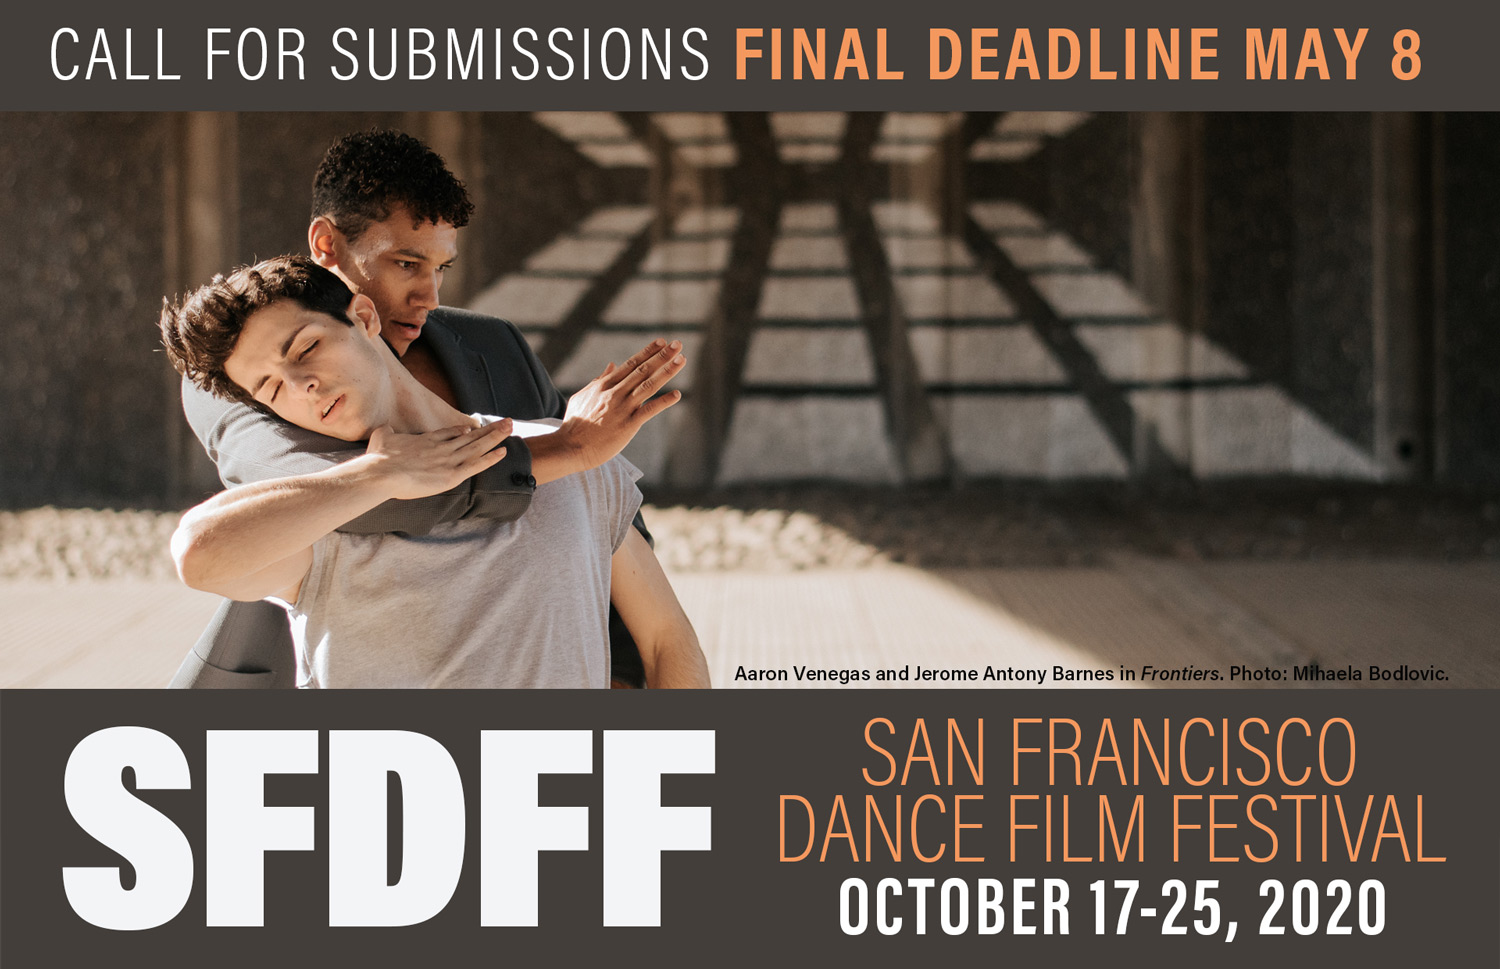 SFDFF Call for Submissions Final